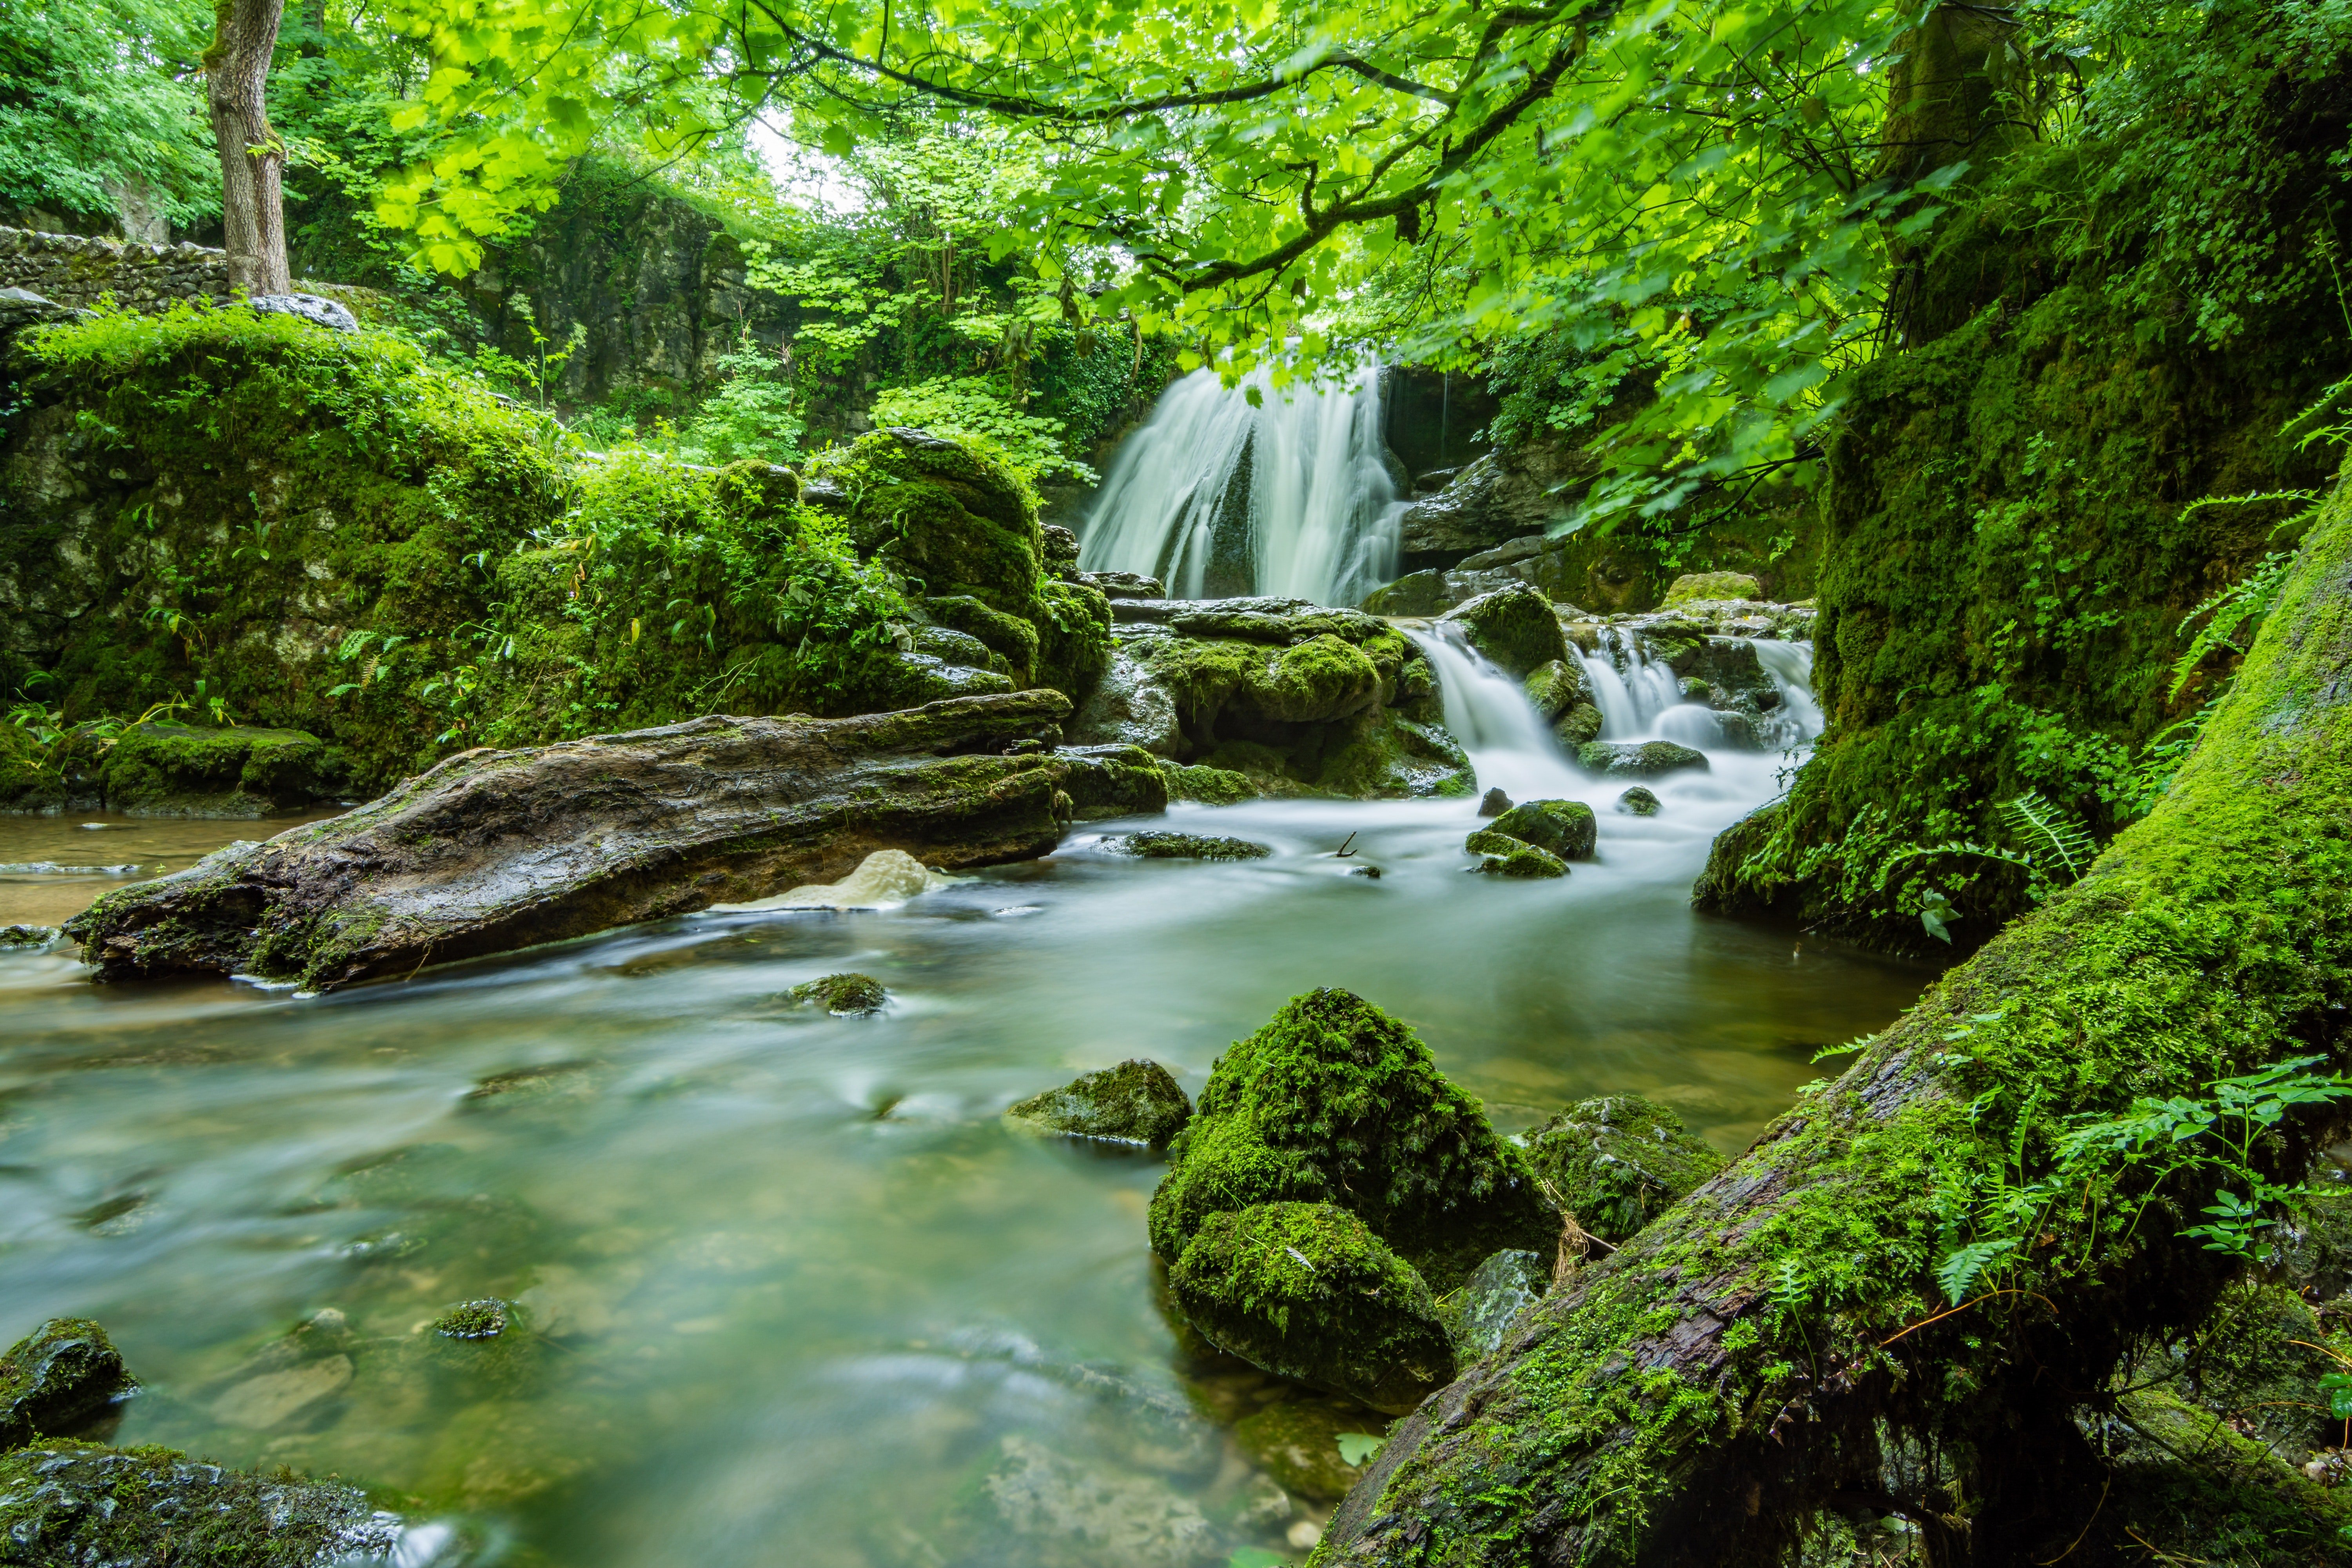 Pictured - An image of waterfalls in a forest | Source: Pexels